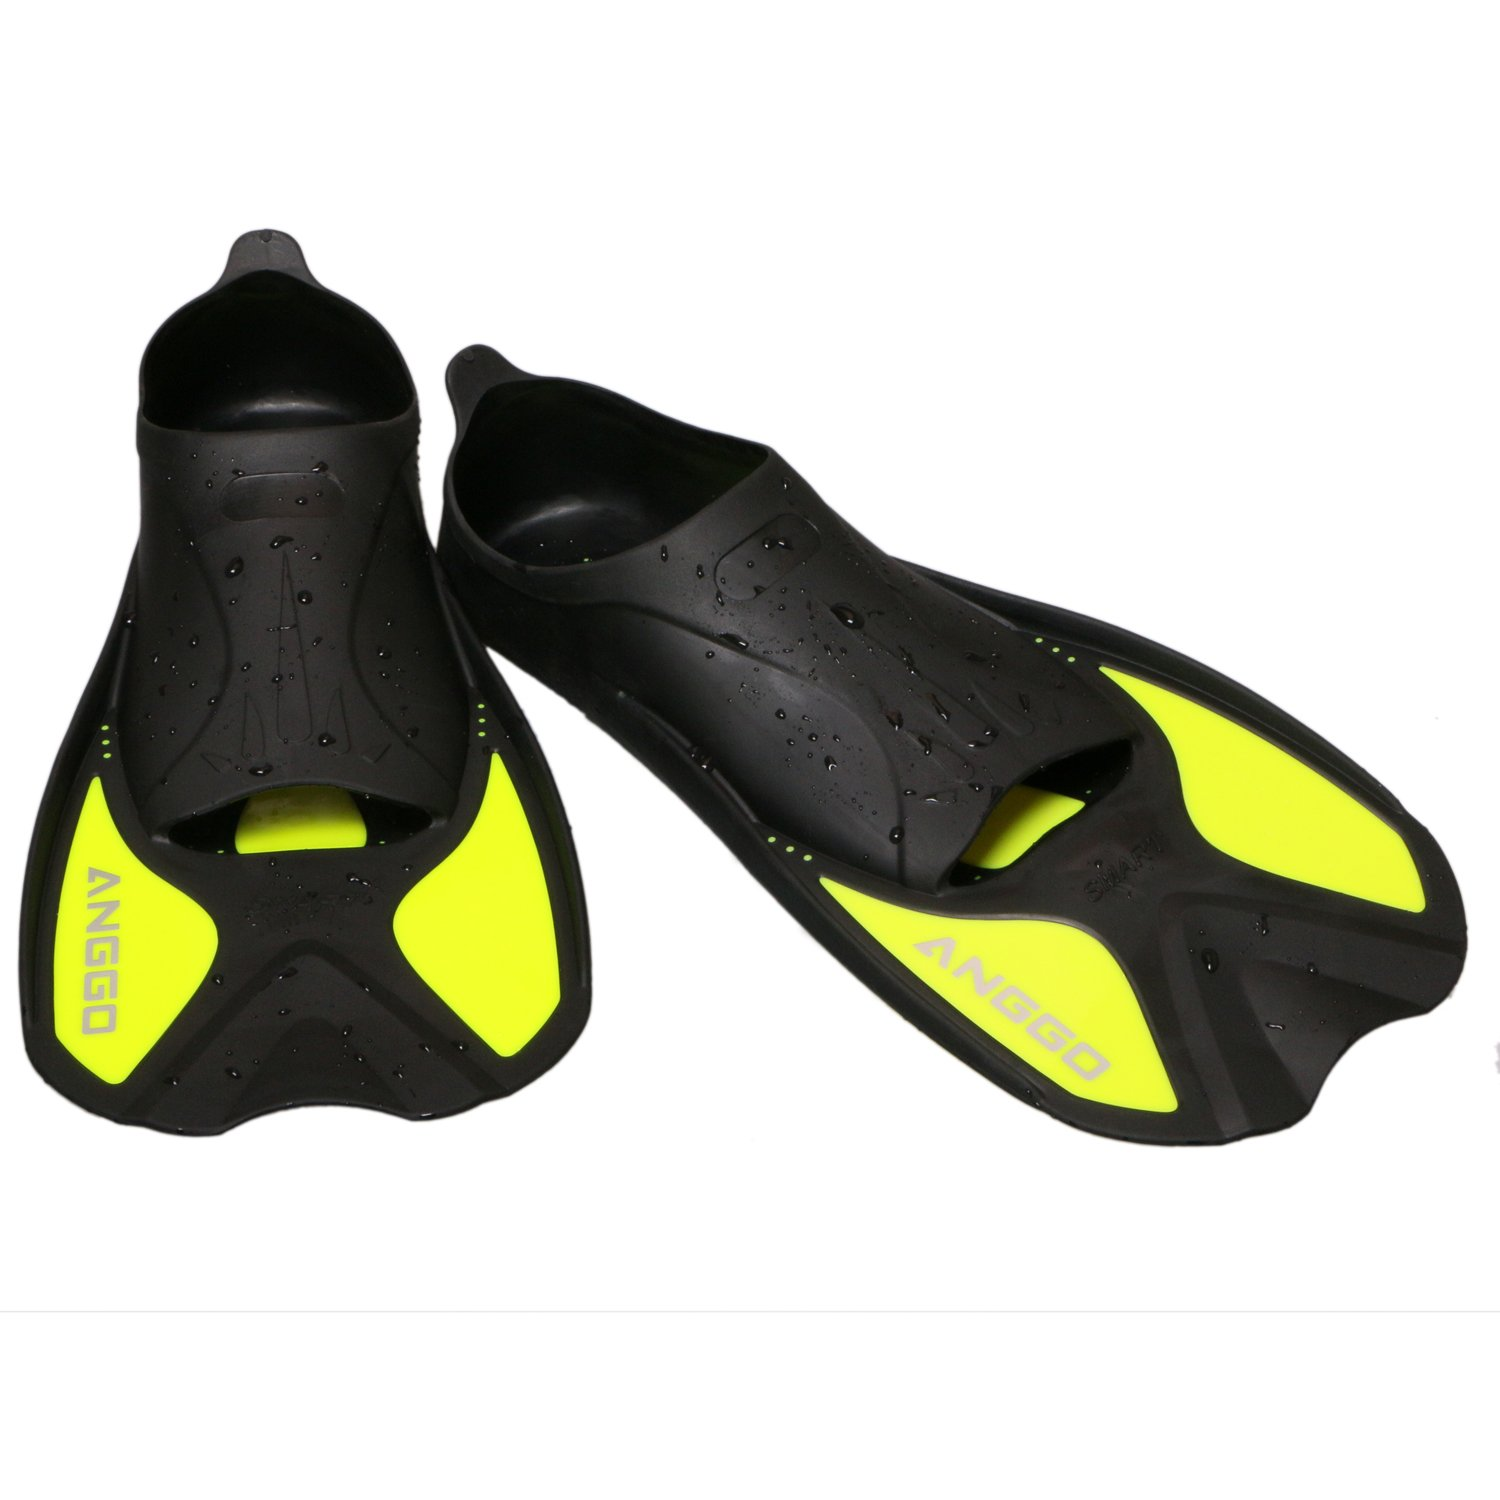 ANGGO Short Dive Fins for Swimming and Snorkeling (Fluorescent Yellow, Small)